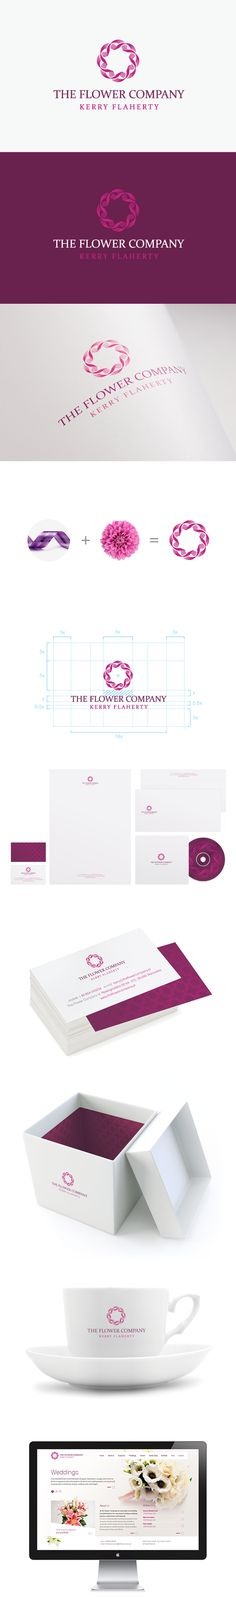 The Flower Company on Behance